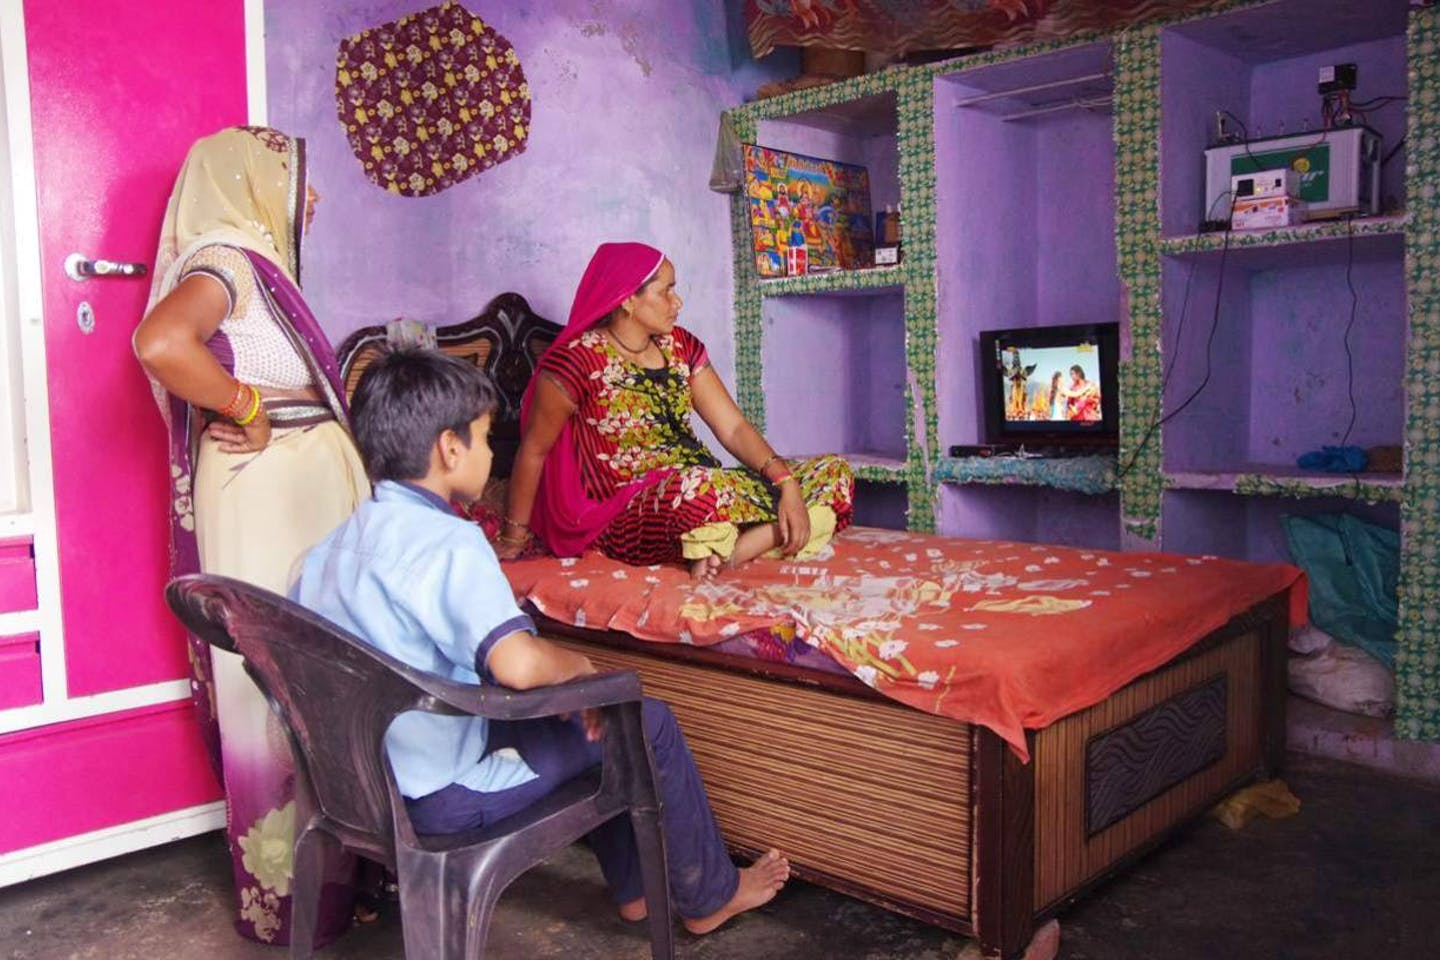 solar enables first tv in Indian rural community